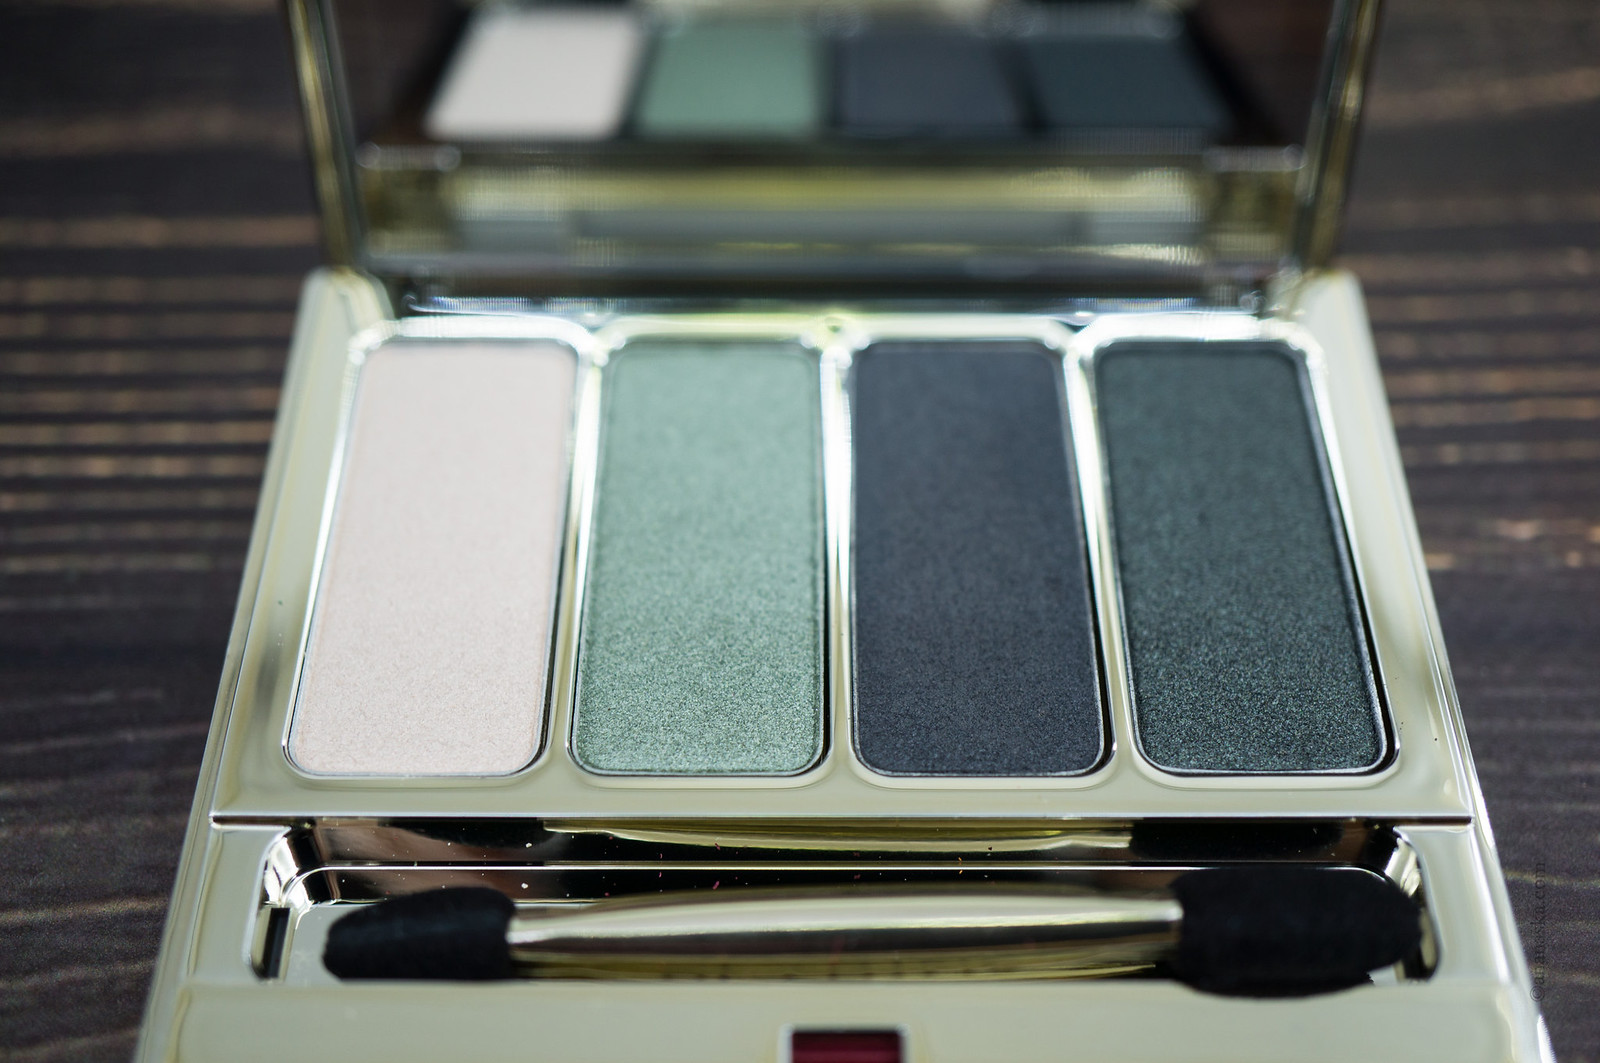 Clarins Palette 4 Couleurs 06 forest